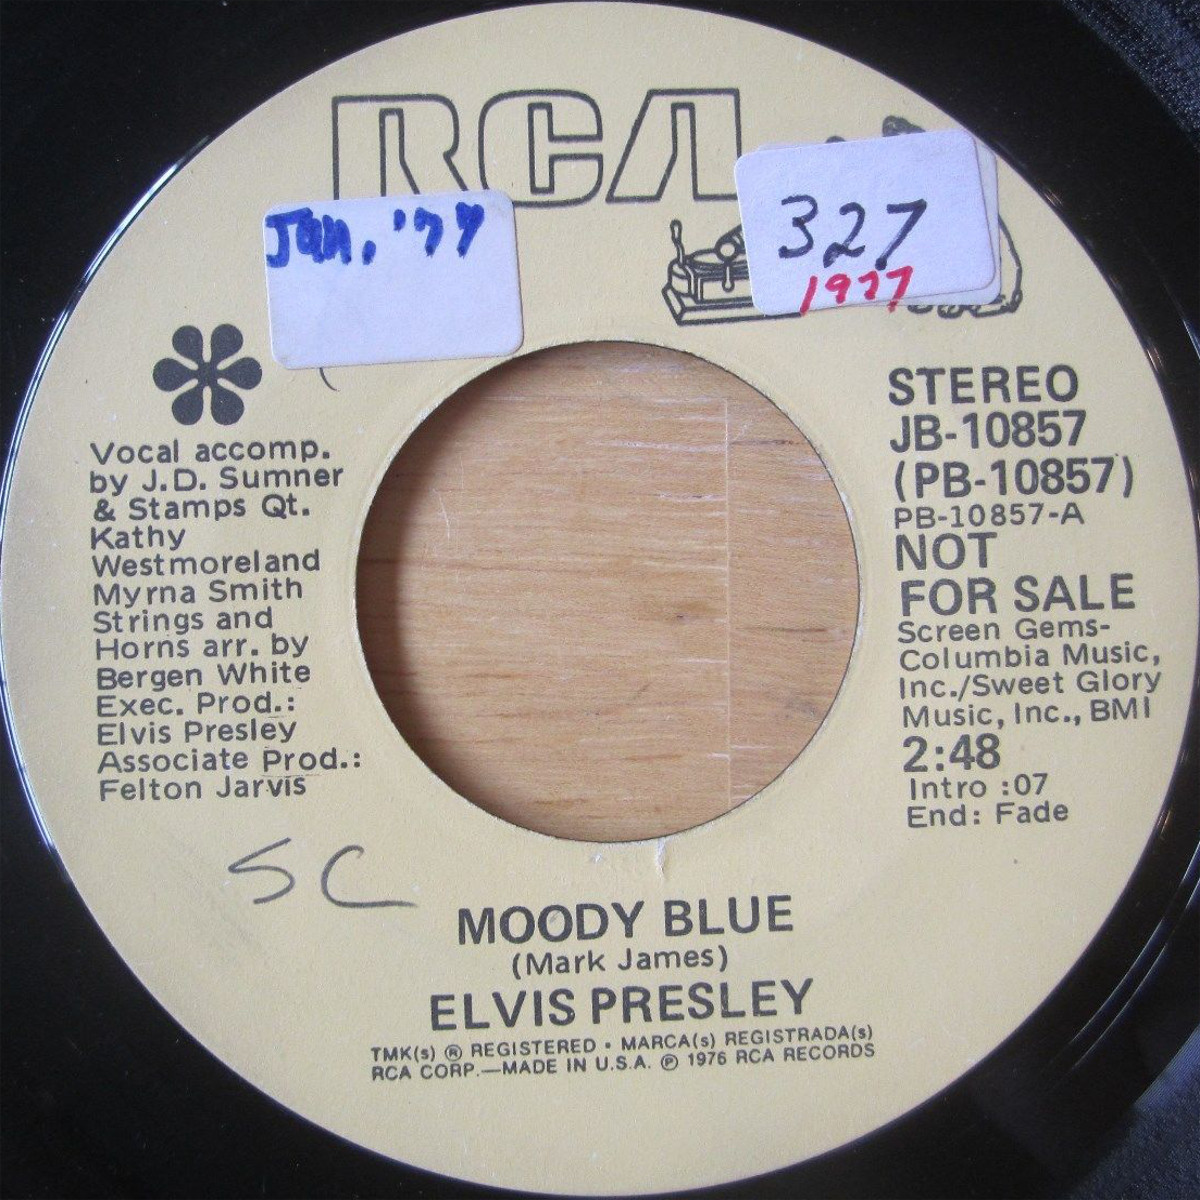 Moody Blue / She Thinks I Still Care Jb-10857ck4kln